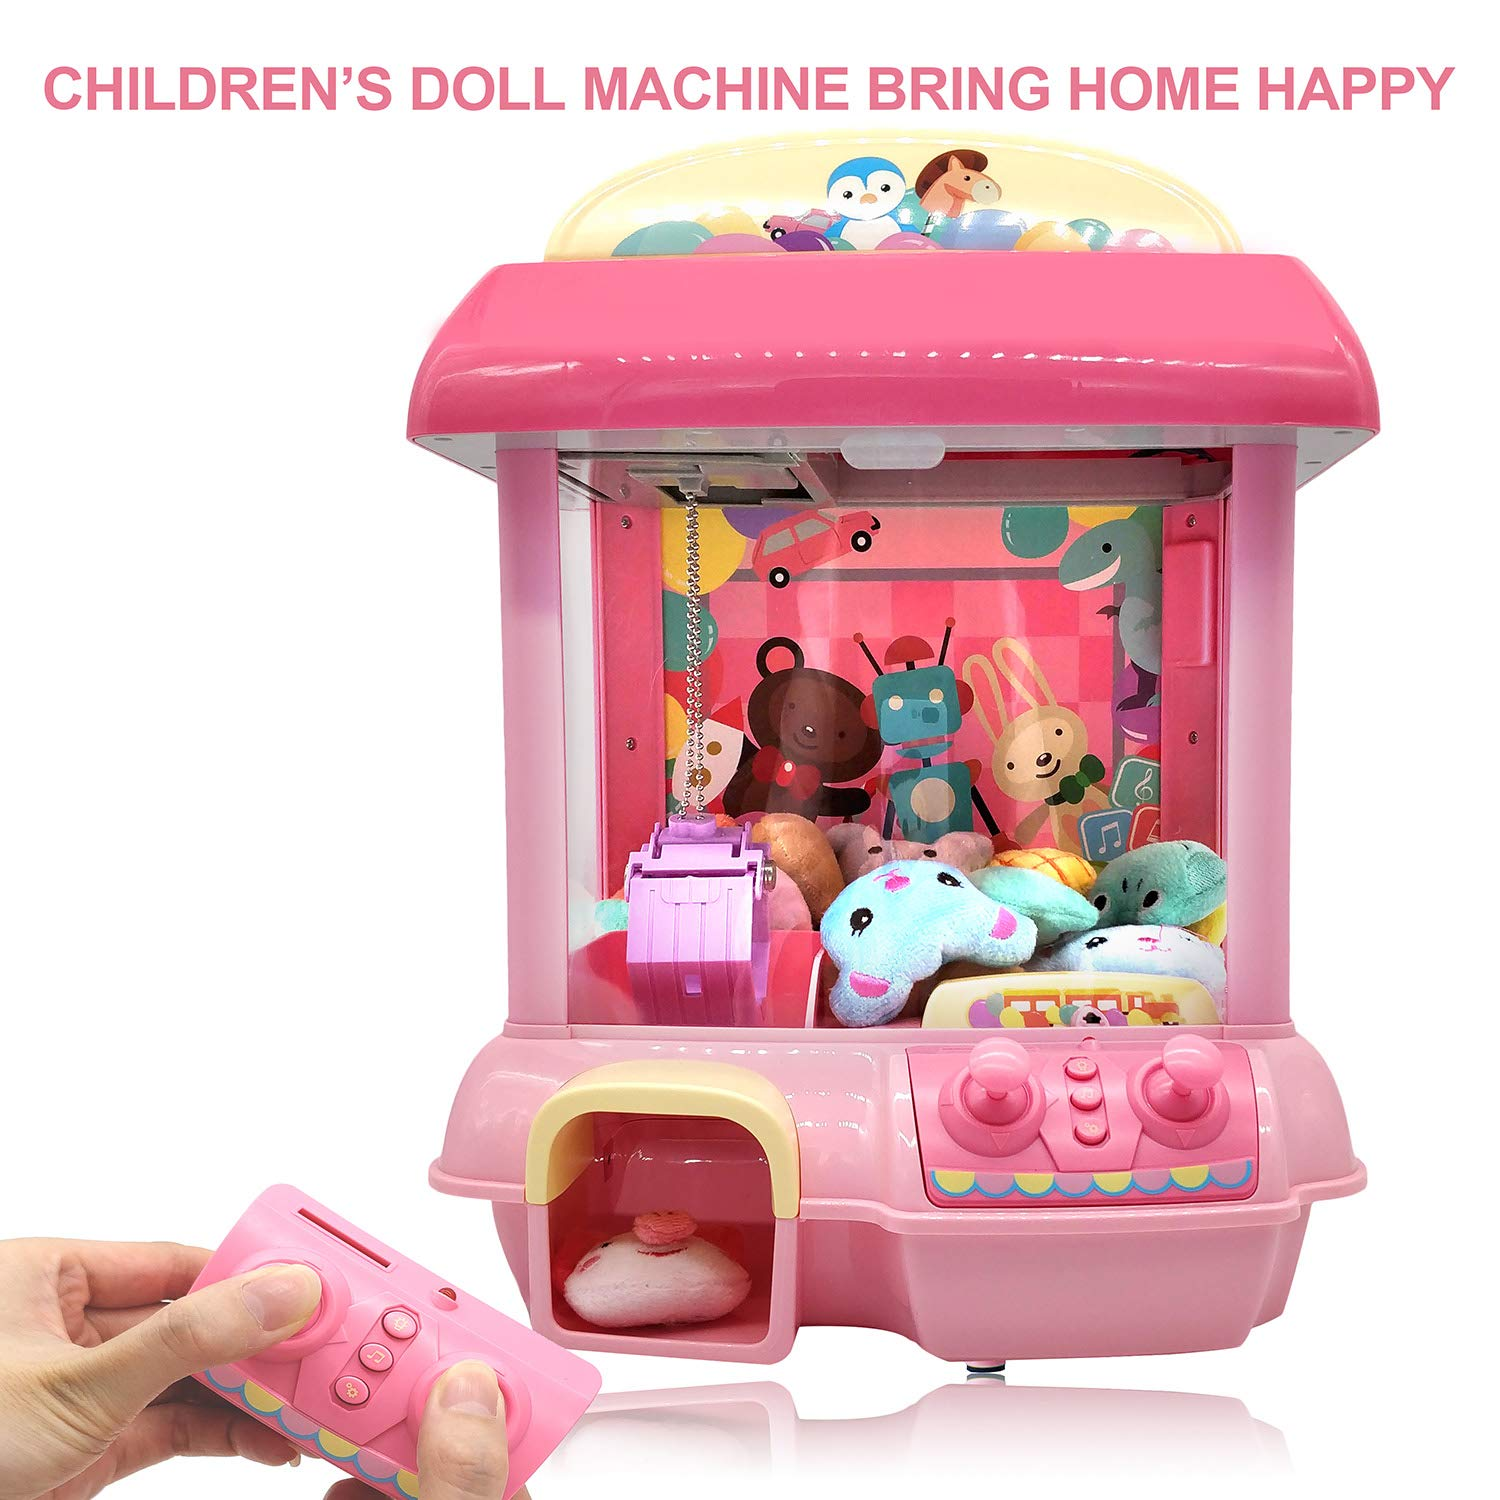 Claw Machine for Kids,Remote Control,Indoor Arcade Gams with Sounds and Lights,Funny Gift for Boys Girls (Pink)